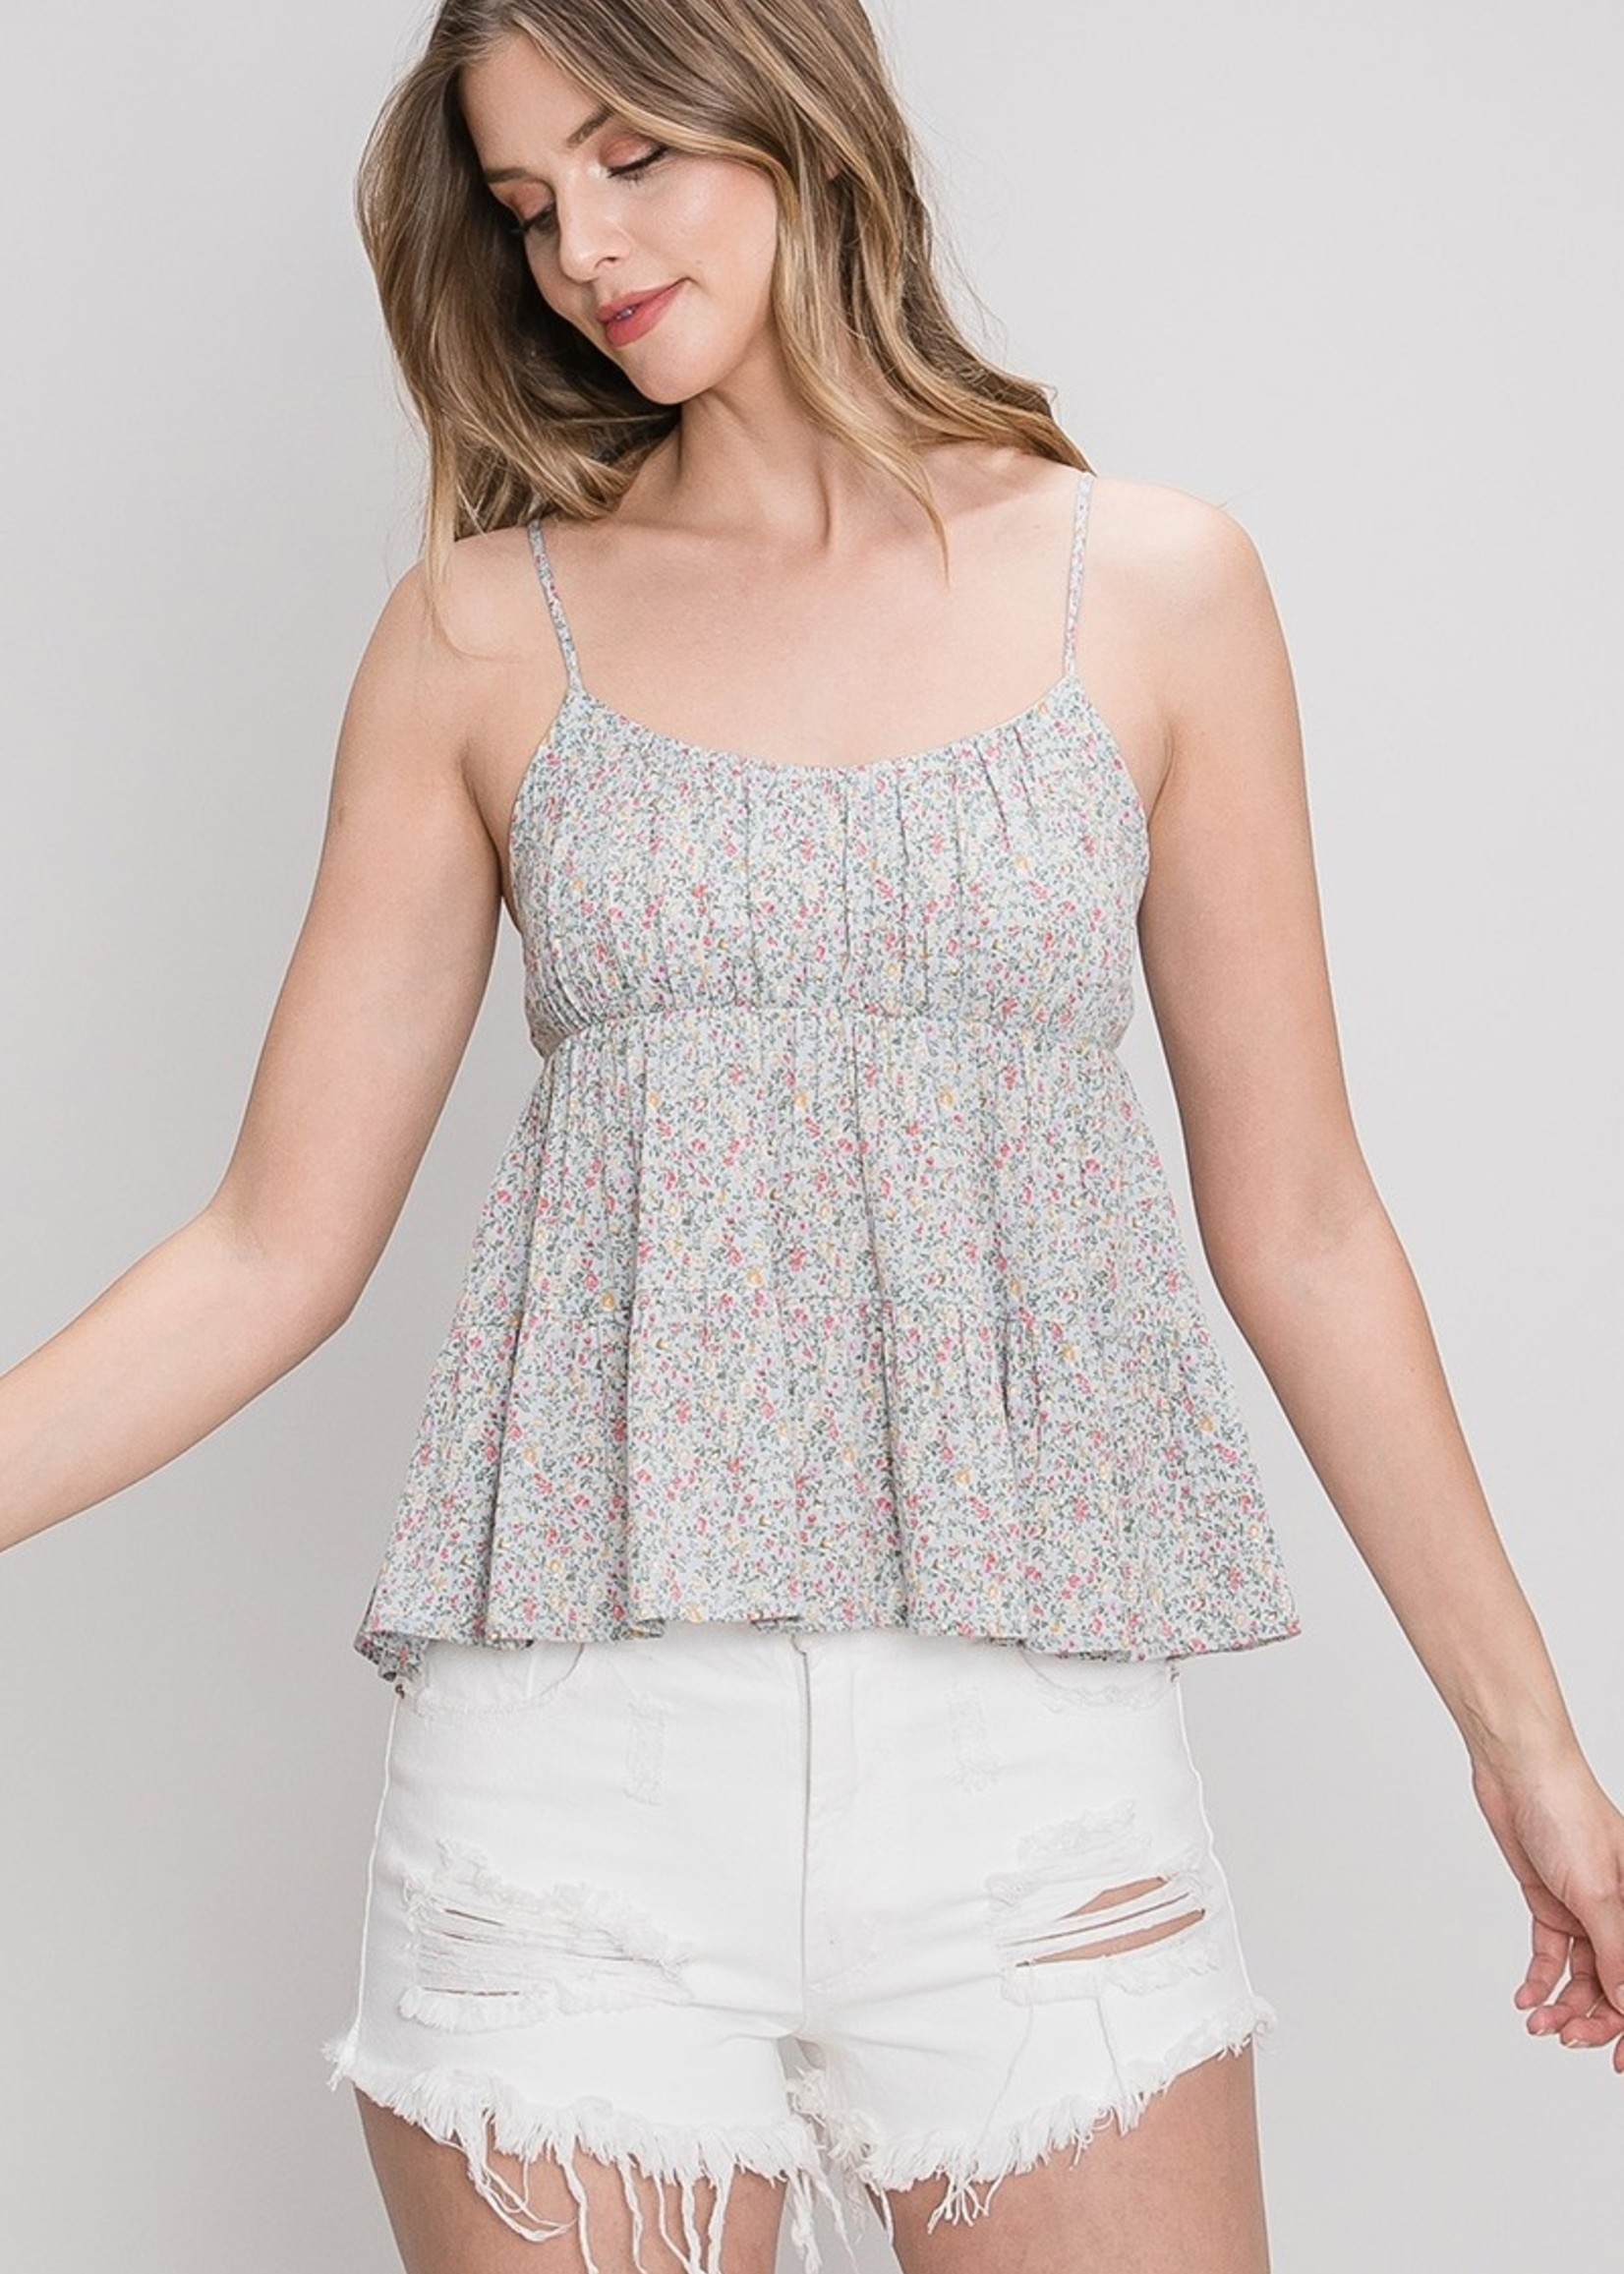 Floral Cami - Pewter